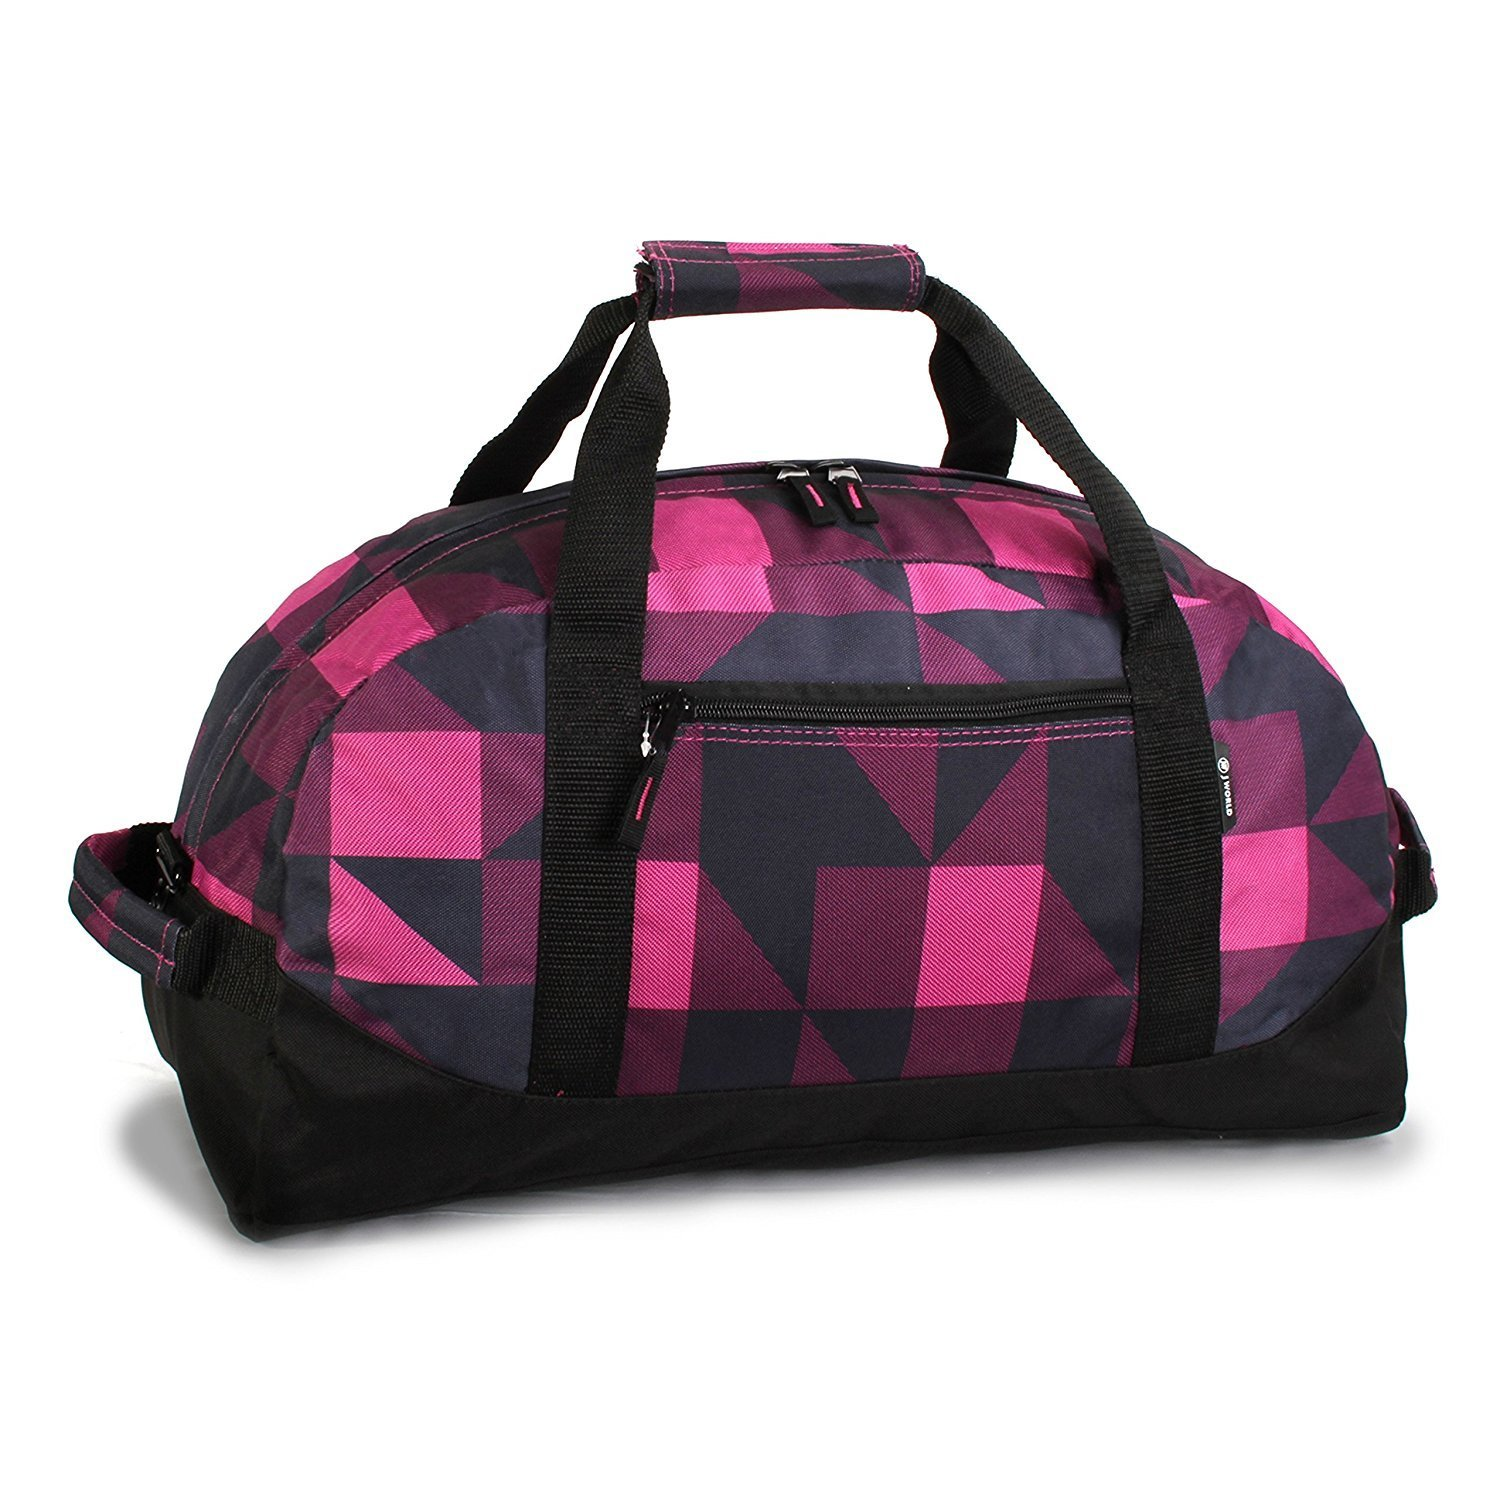 f512941871 Get Quotations · Pink Black Girls 30Inch Block Checkered Sports Pattern  Oversize Carry Rolling Upright Duffle Bag